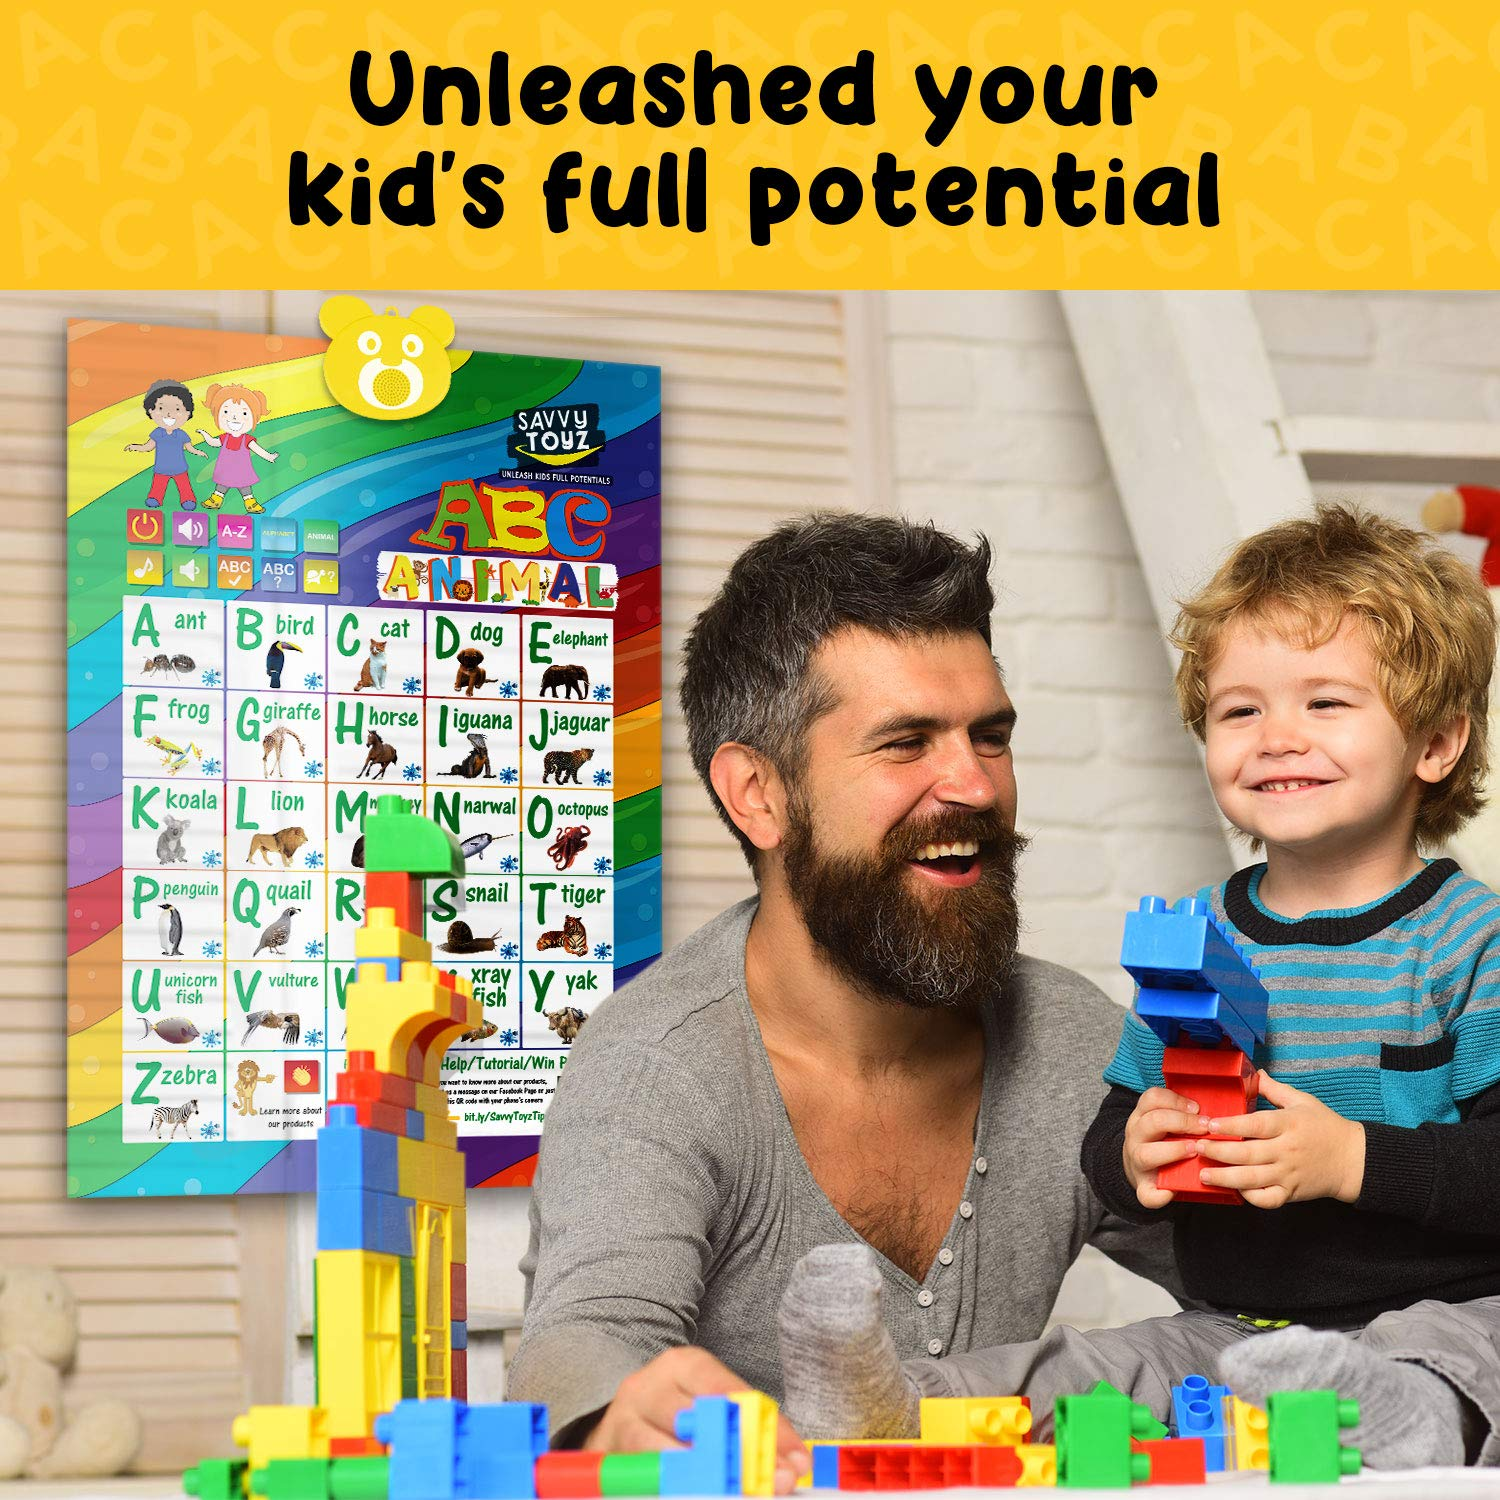 SavvyToyZ Educational Toys for 2-5 Year Olds - Help Your Toddler's Development and Education with Preschool Learning Toys - Fun Talking Interactive Poster for Entertainment and Learning Alphabet by SavvyToyZ (Image #5)